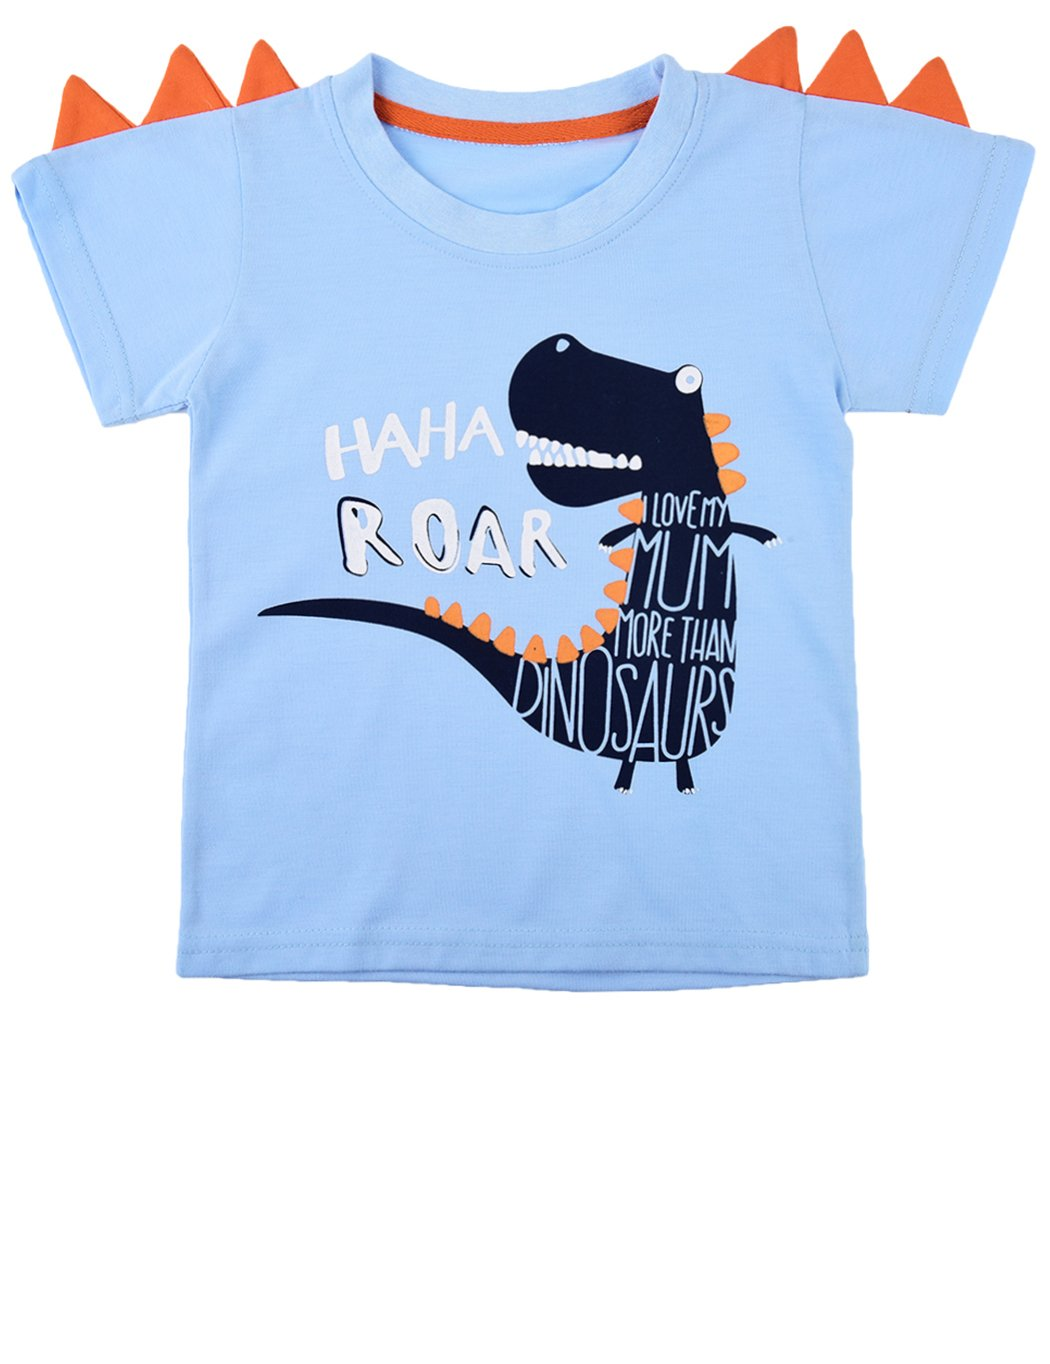 Dhasiue Kids Dinosaur T-Shirt Toddler/Little Boys Short Sleeve Tops Tees